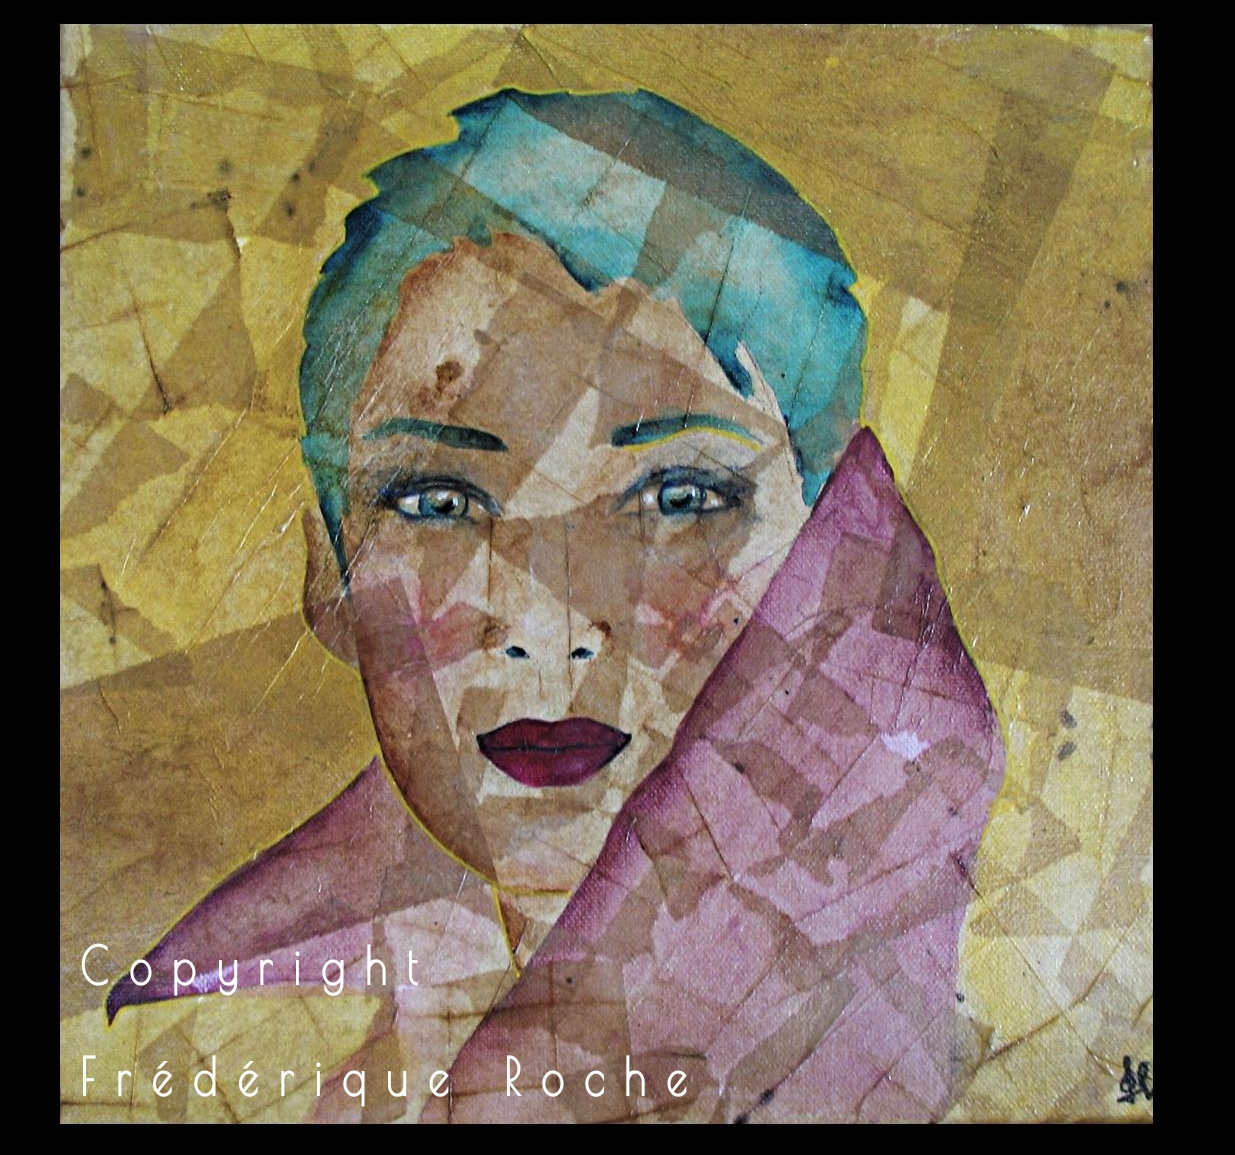 frederique roche tableau serenite kintsugi regard  visage technique mixte collages artwork Une galerie de portrait